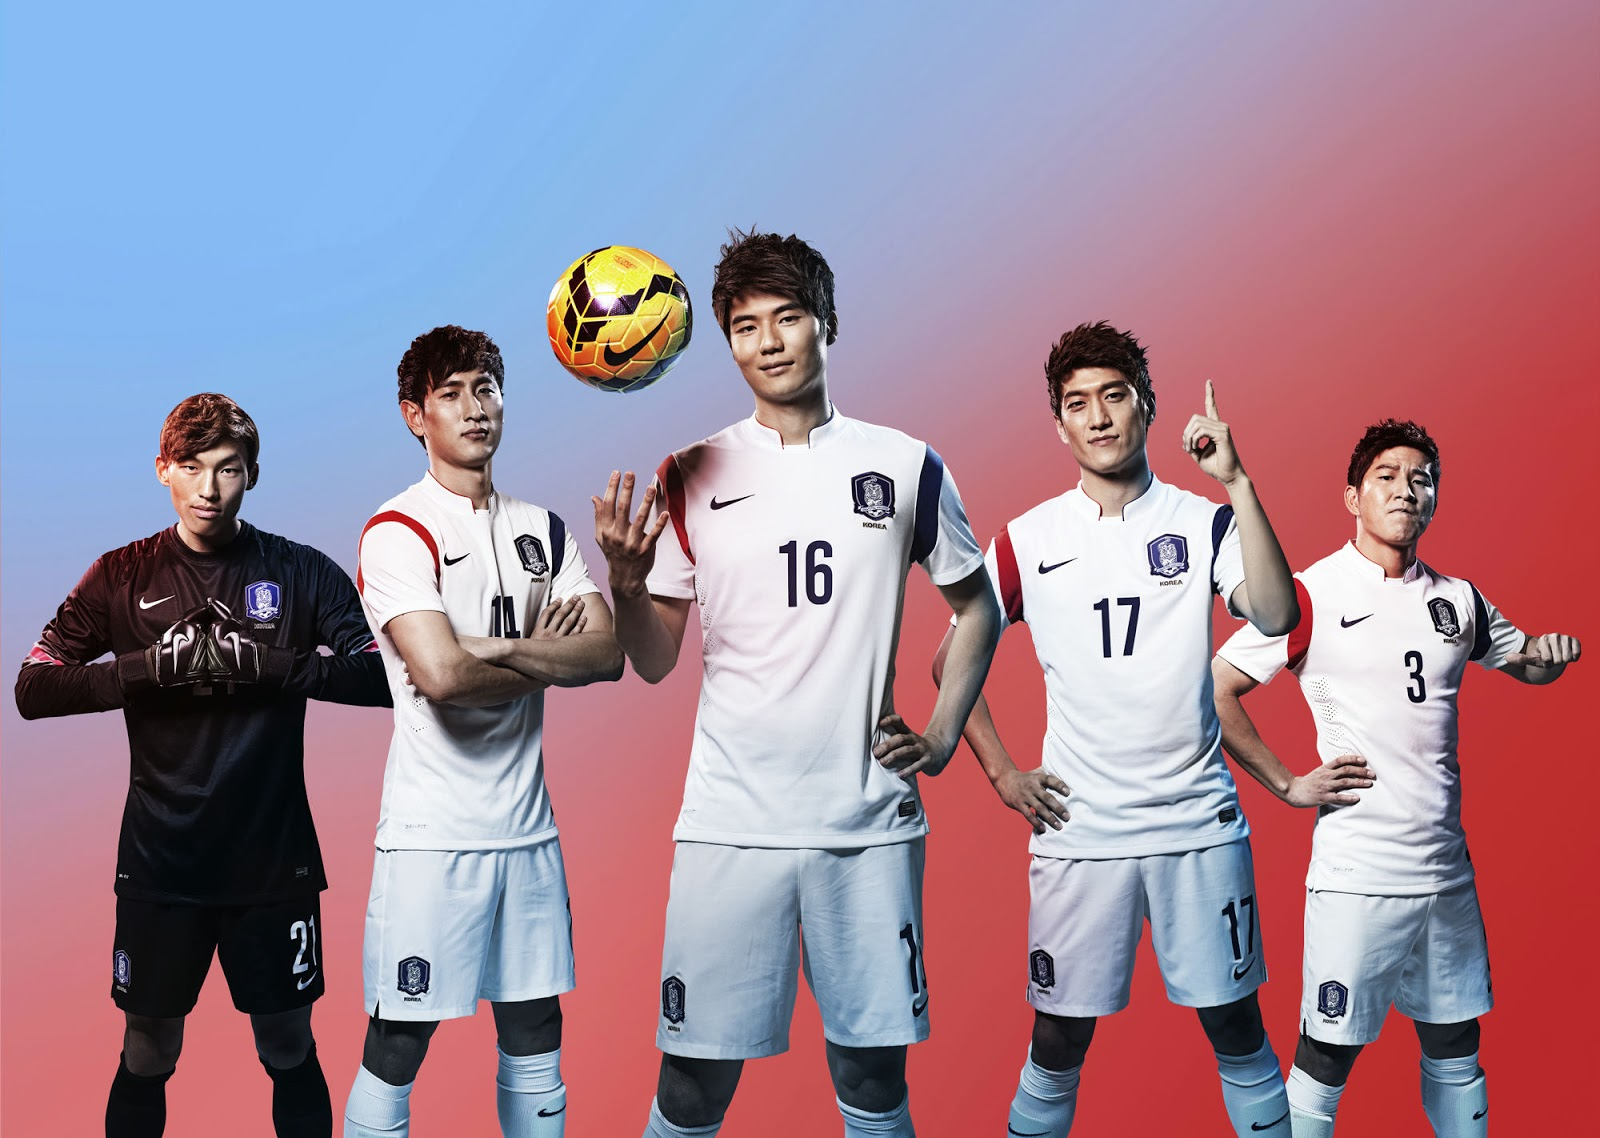 bbc55132a82 Korea in the 2014 World Cup – Korea-Canada Blog